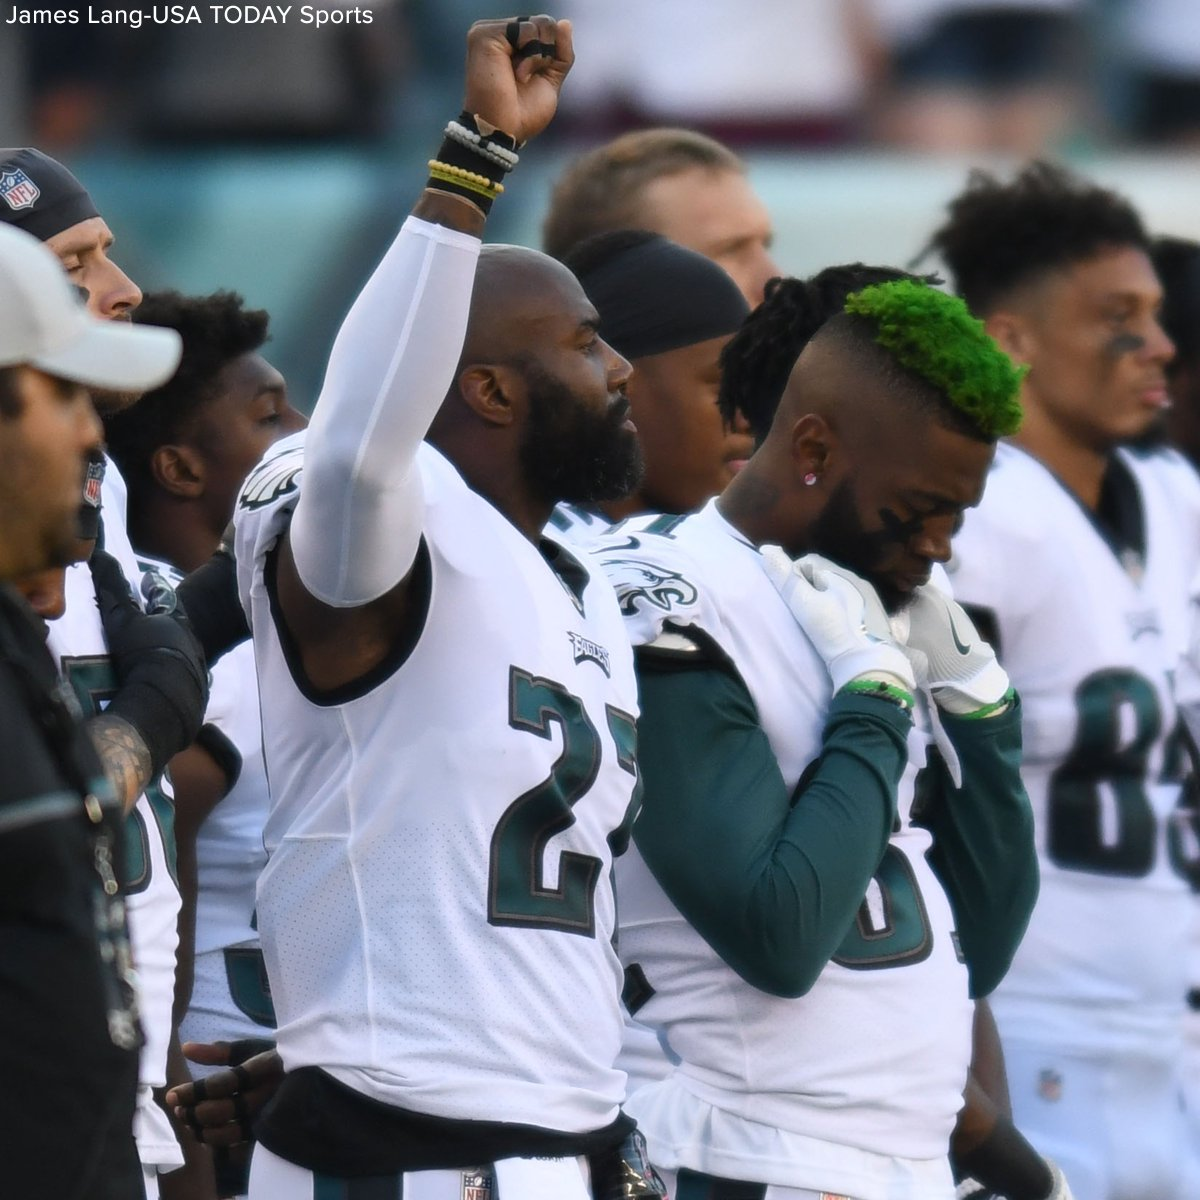 Several players protested during the national anthem at NFL preseason games on Thursday night. https://t.co/v9fxCmwdcr